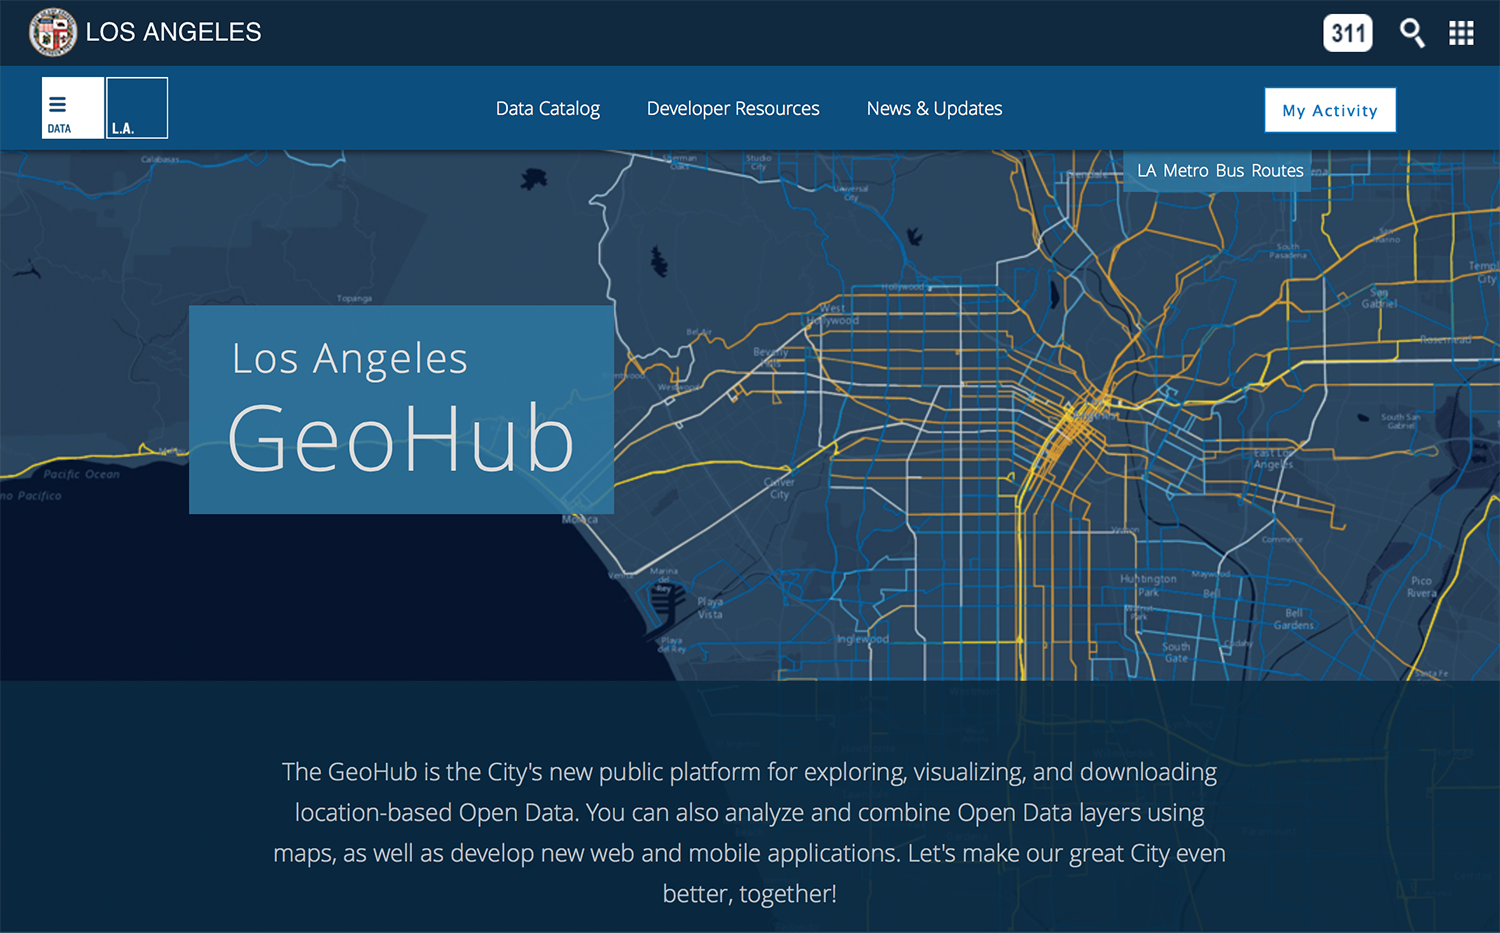 Los Angeles Geohub home page